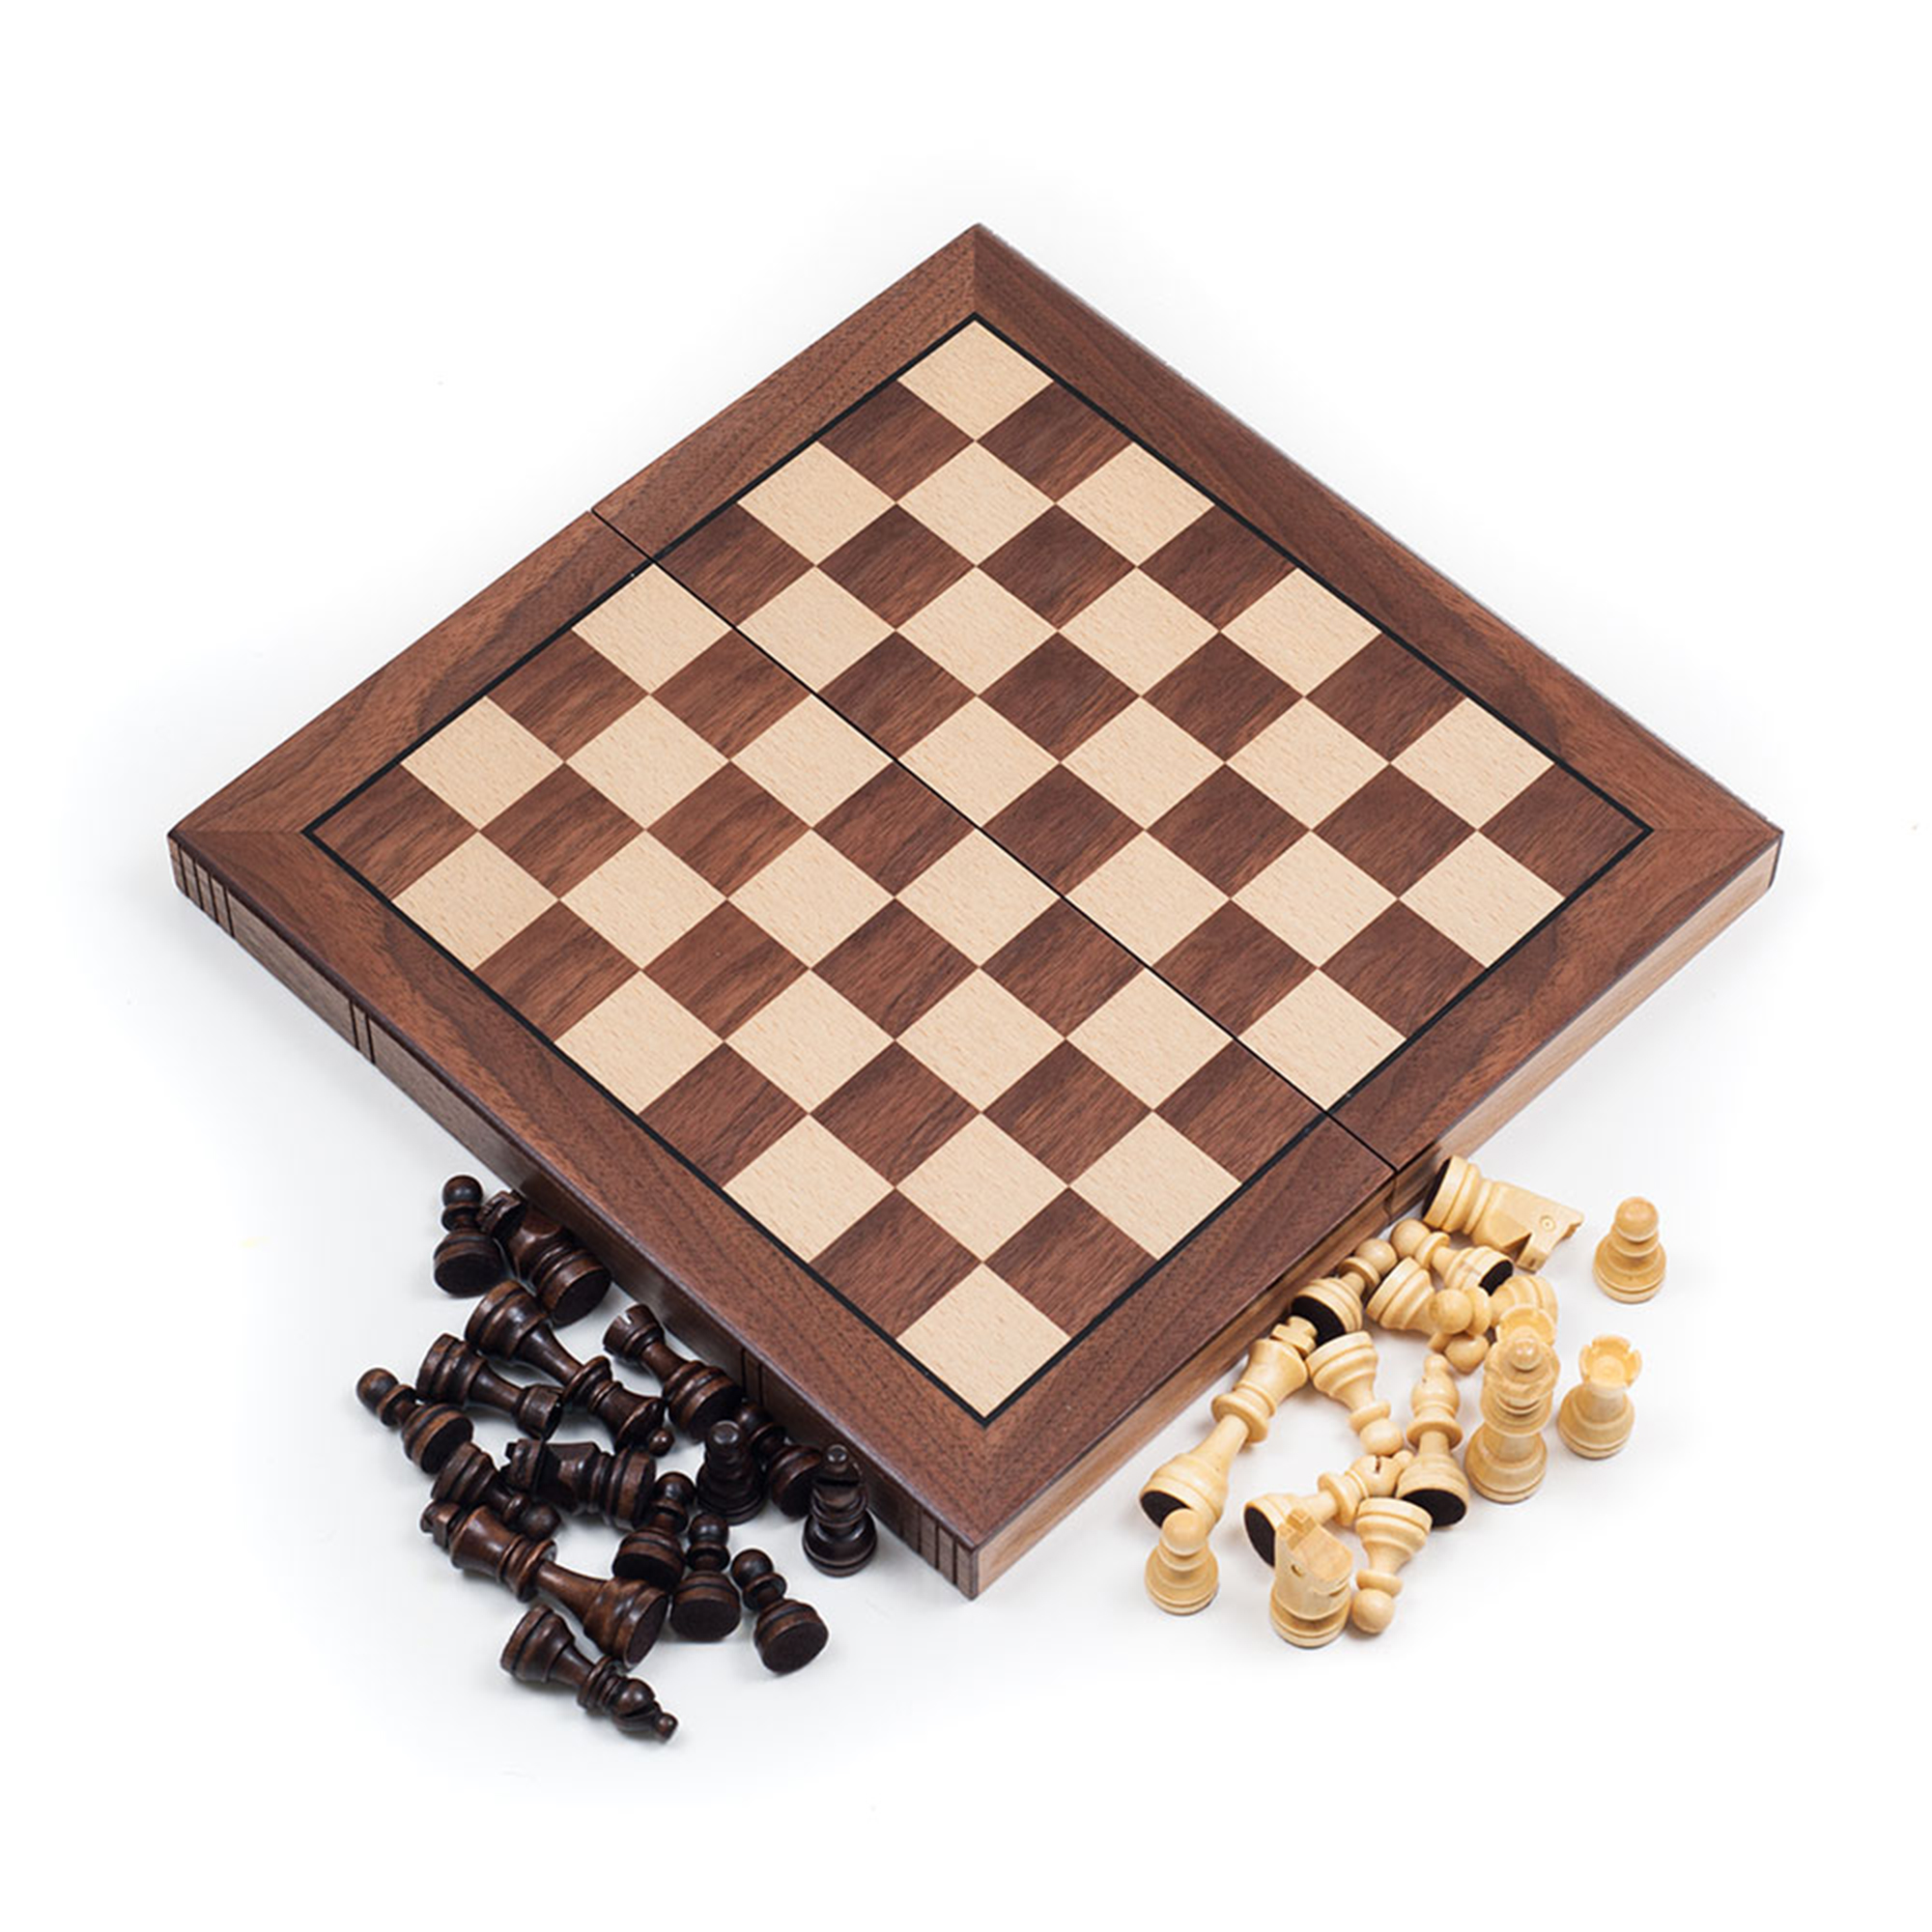 Chess Board Walnut Book Style with Staunton Chessmen Chess Set by Hey! Play! by Trademark Global LLC